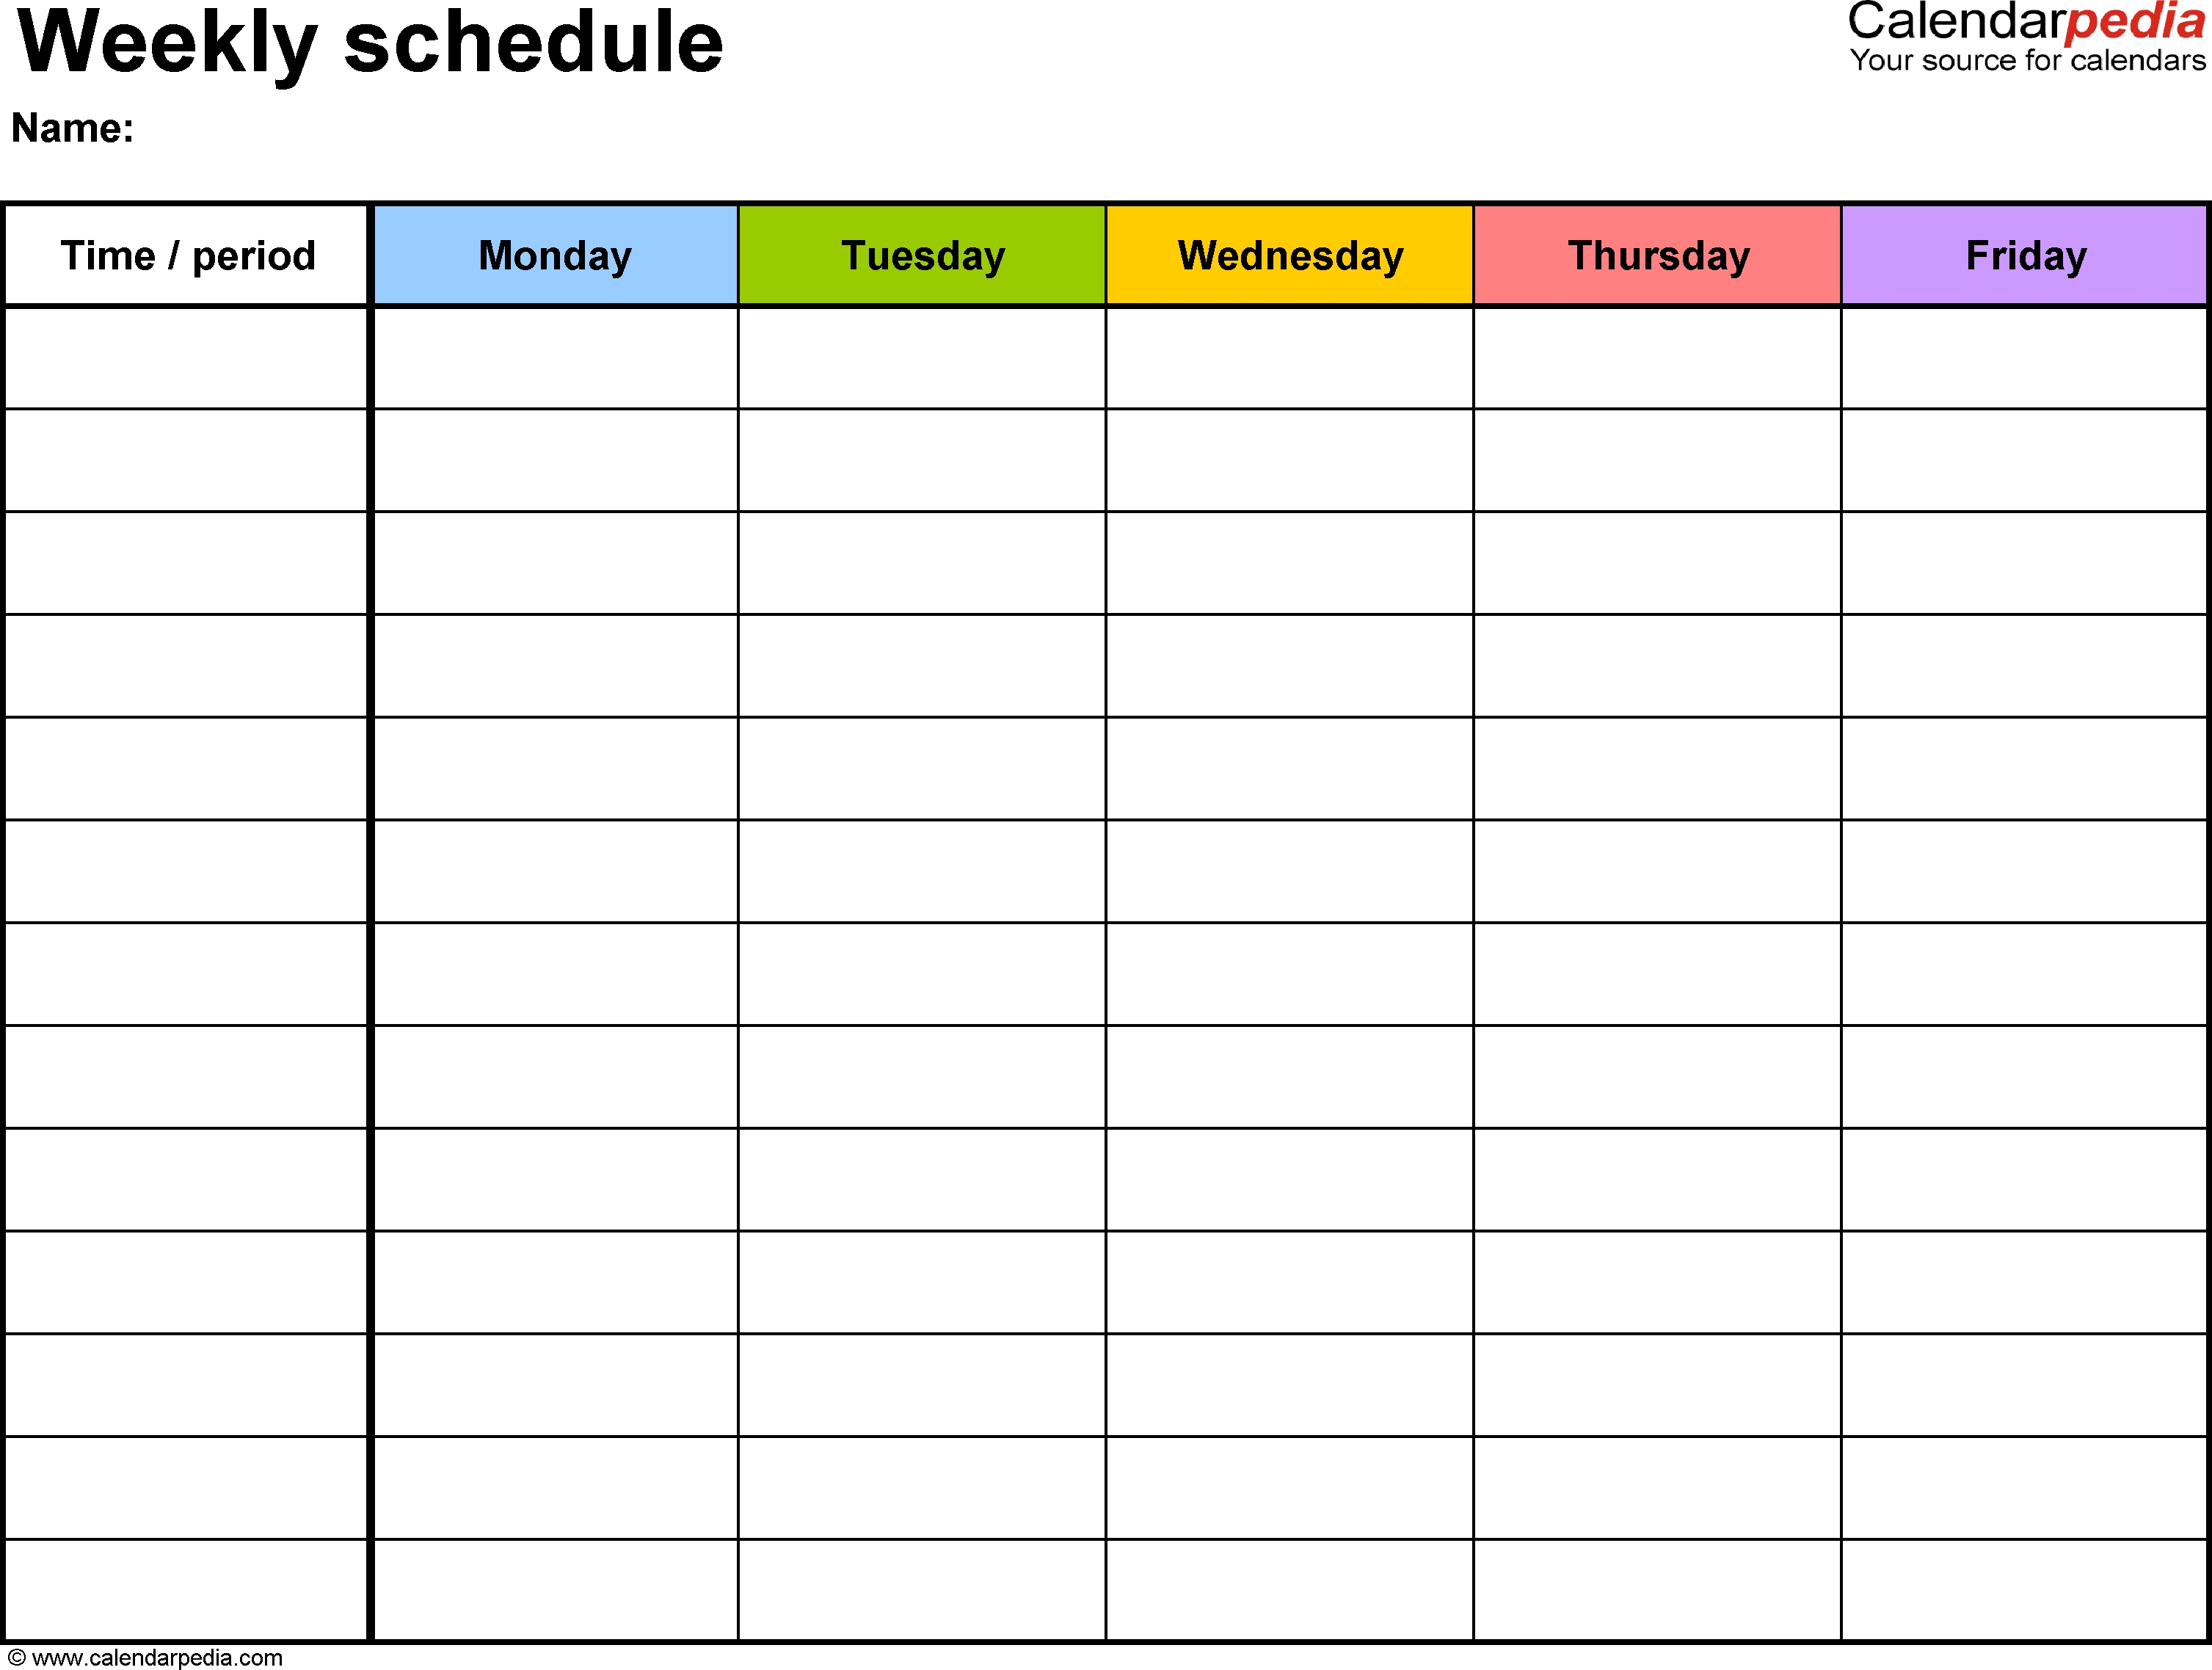 Free Weekly Schedule Templates For Excel - 18 Templates  Blank Excel Spreadsheet With Calendar